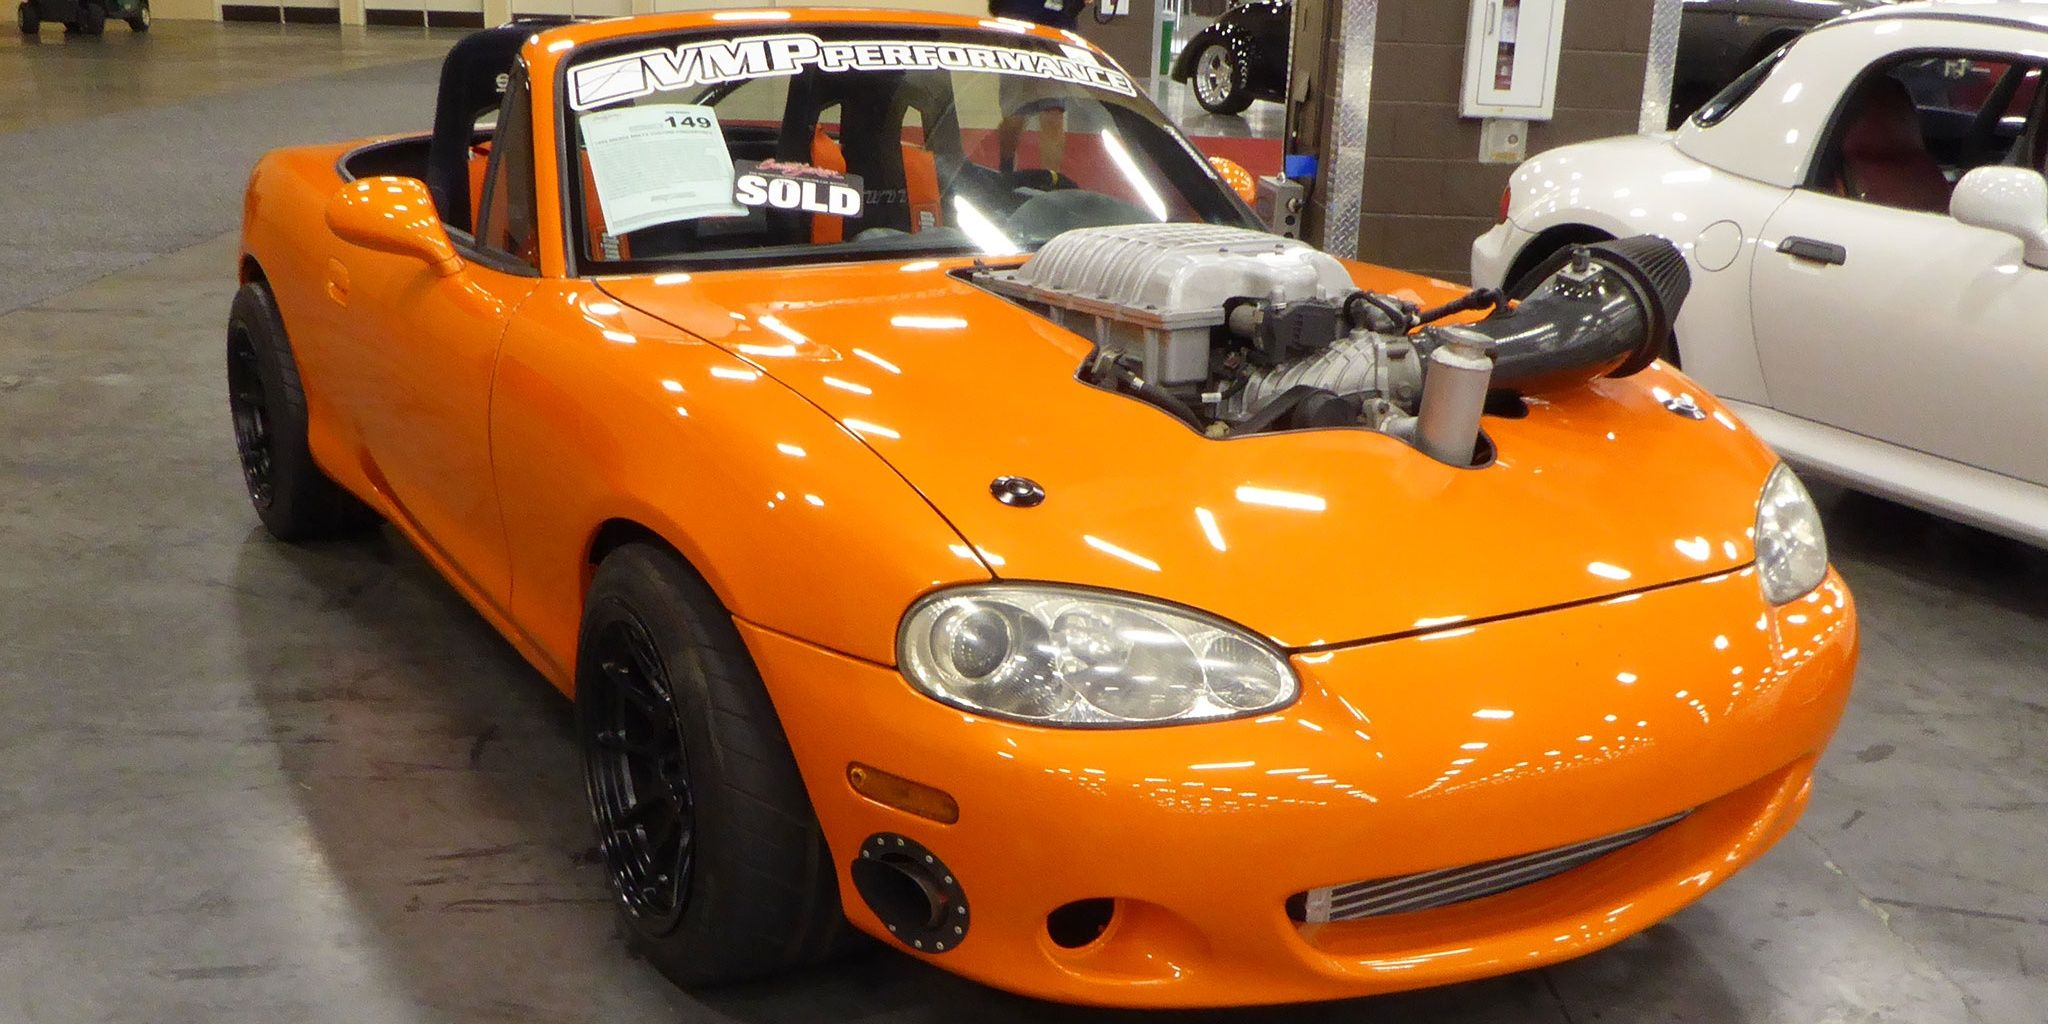 These Modified Miatas Are Definitely Not Your Average Hairdresser's Cars